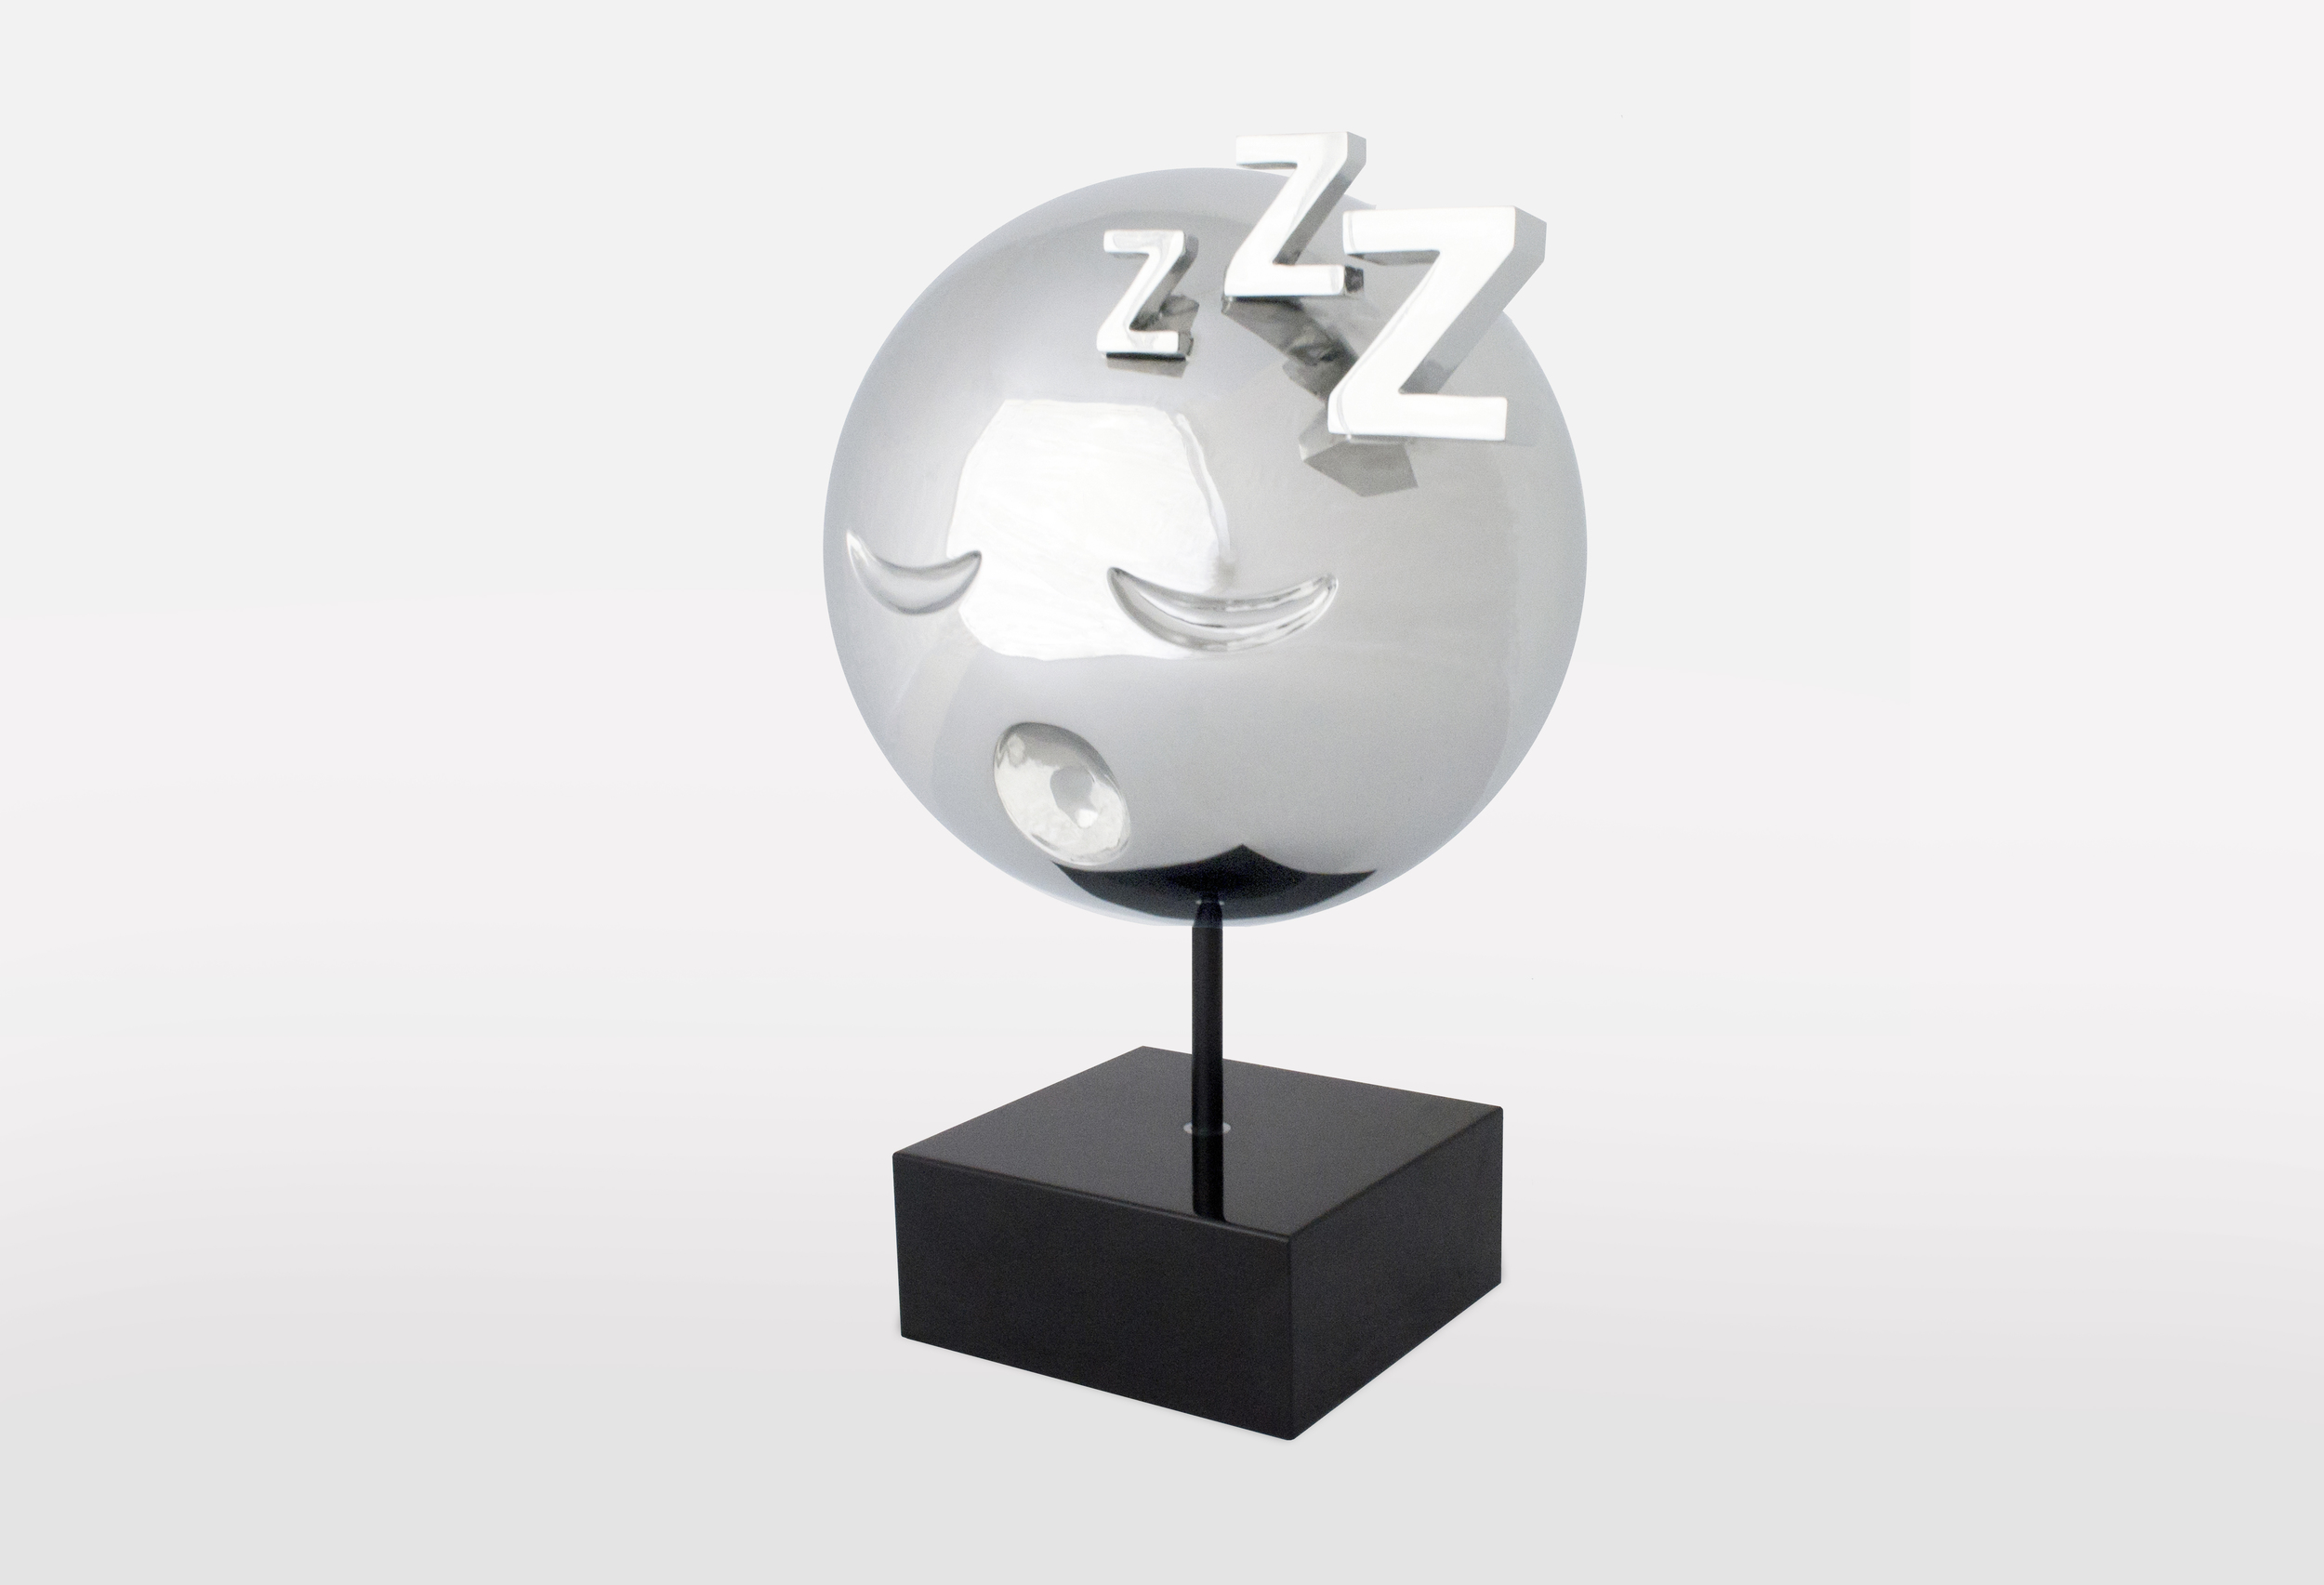 Sleeping Emoji Stainless Steel